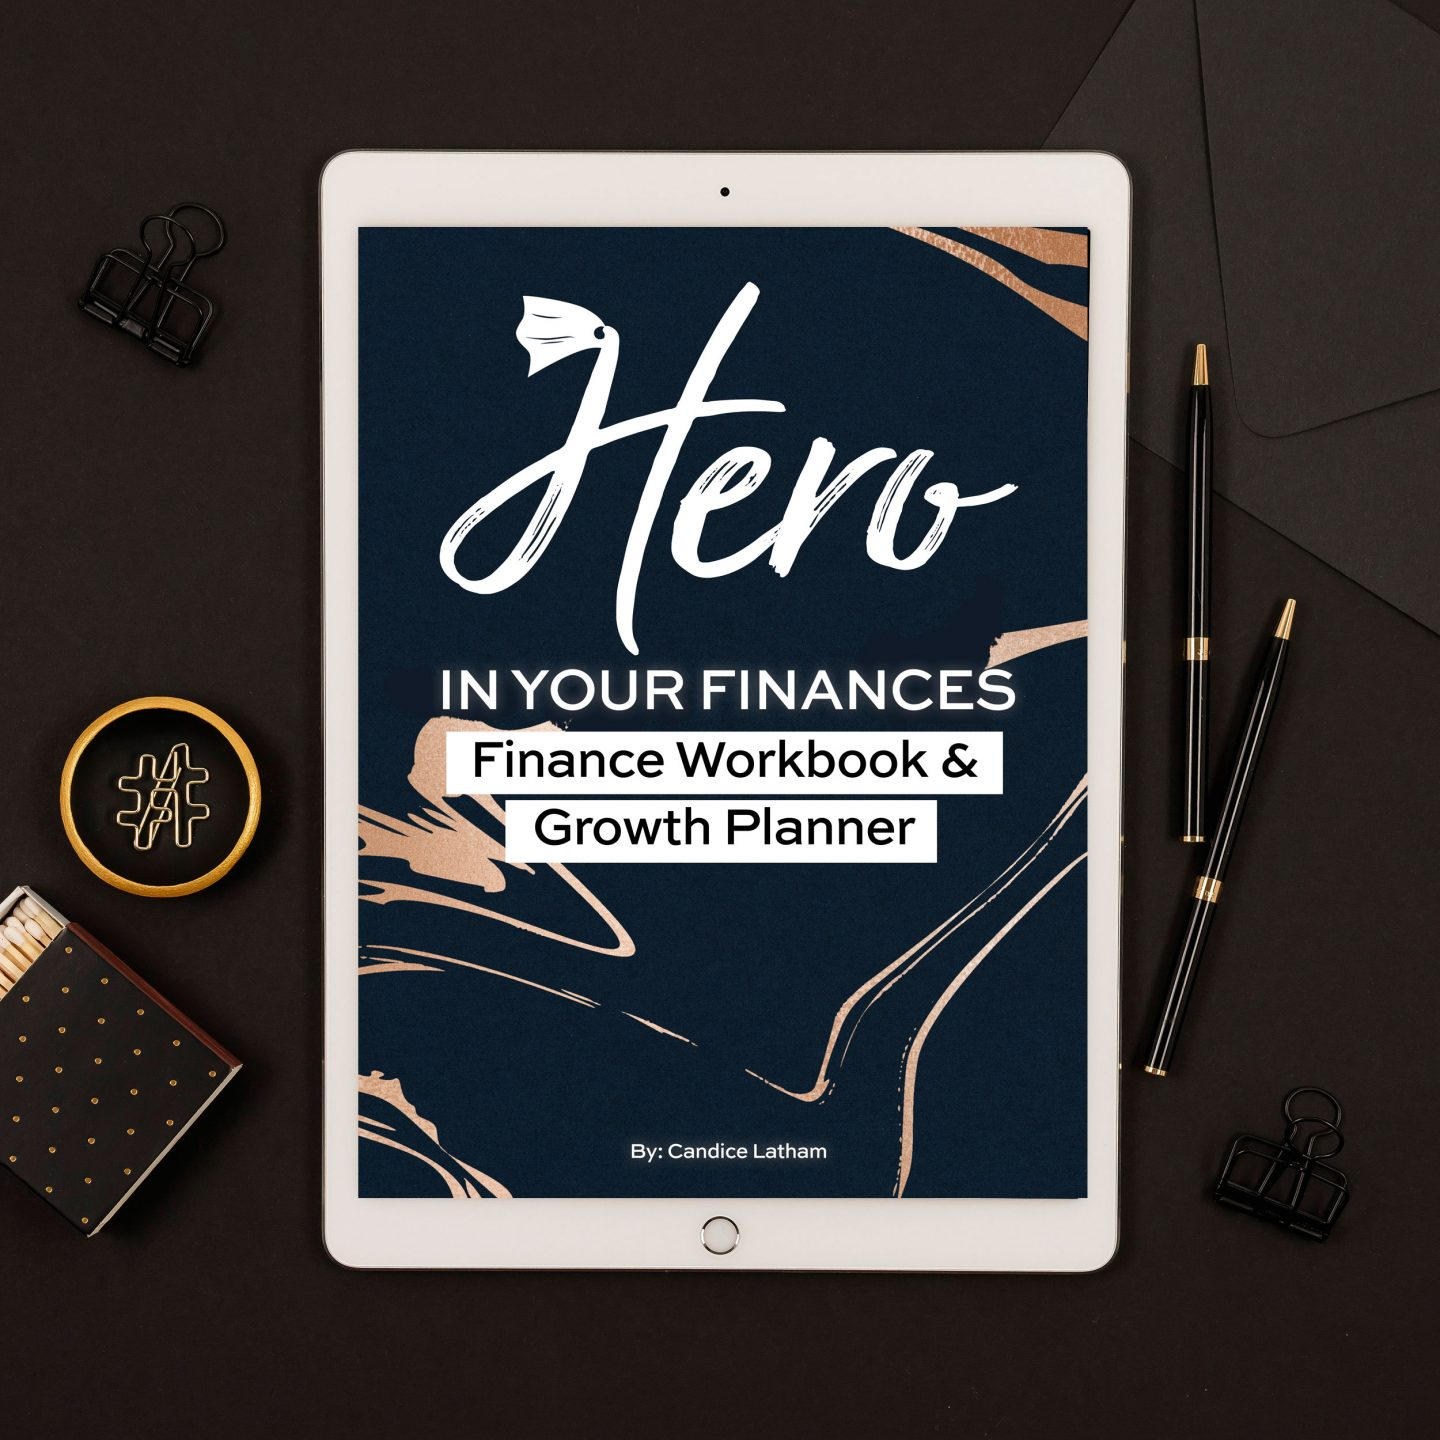 Hero In your finances